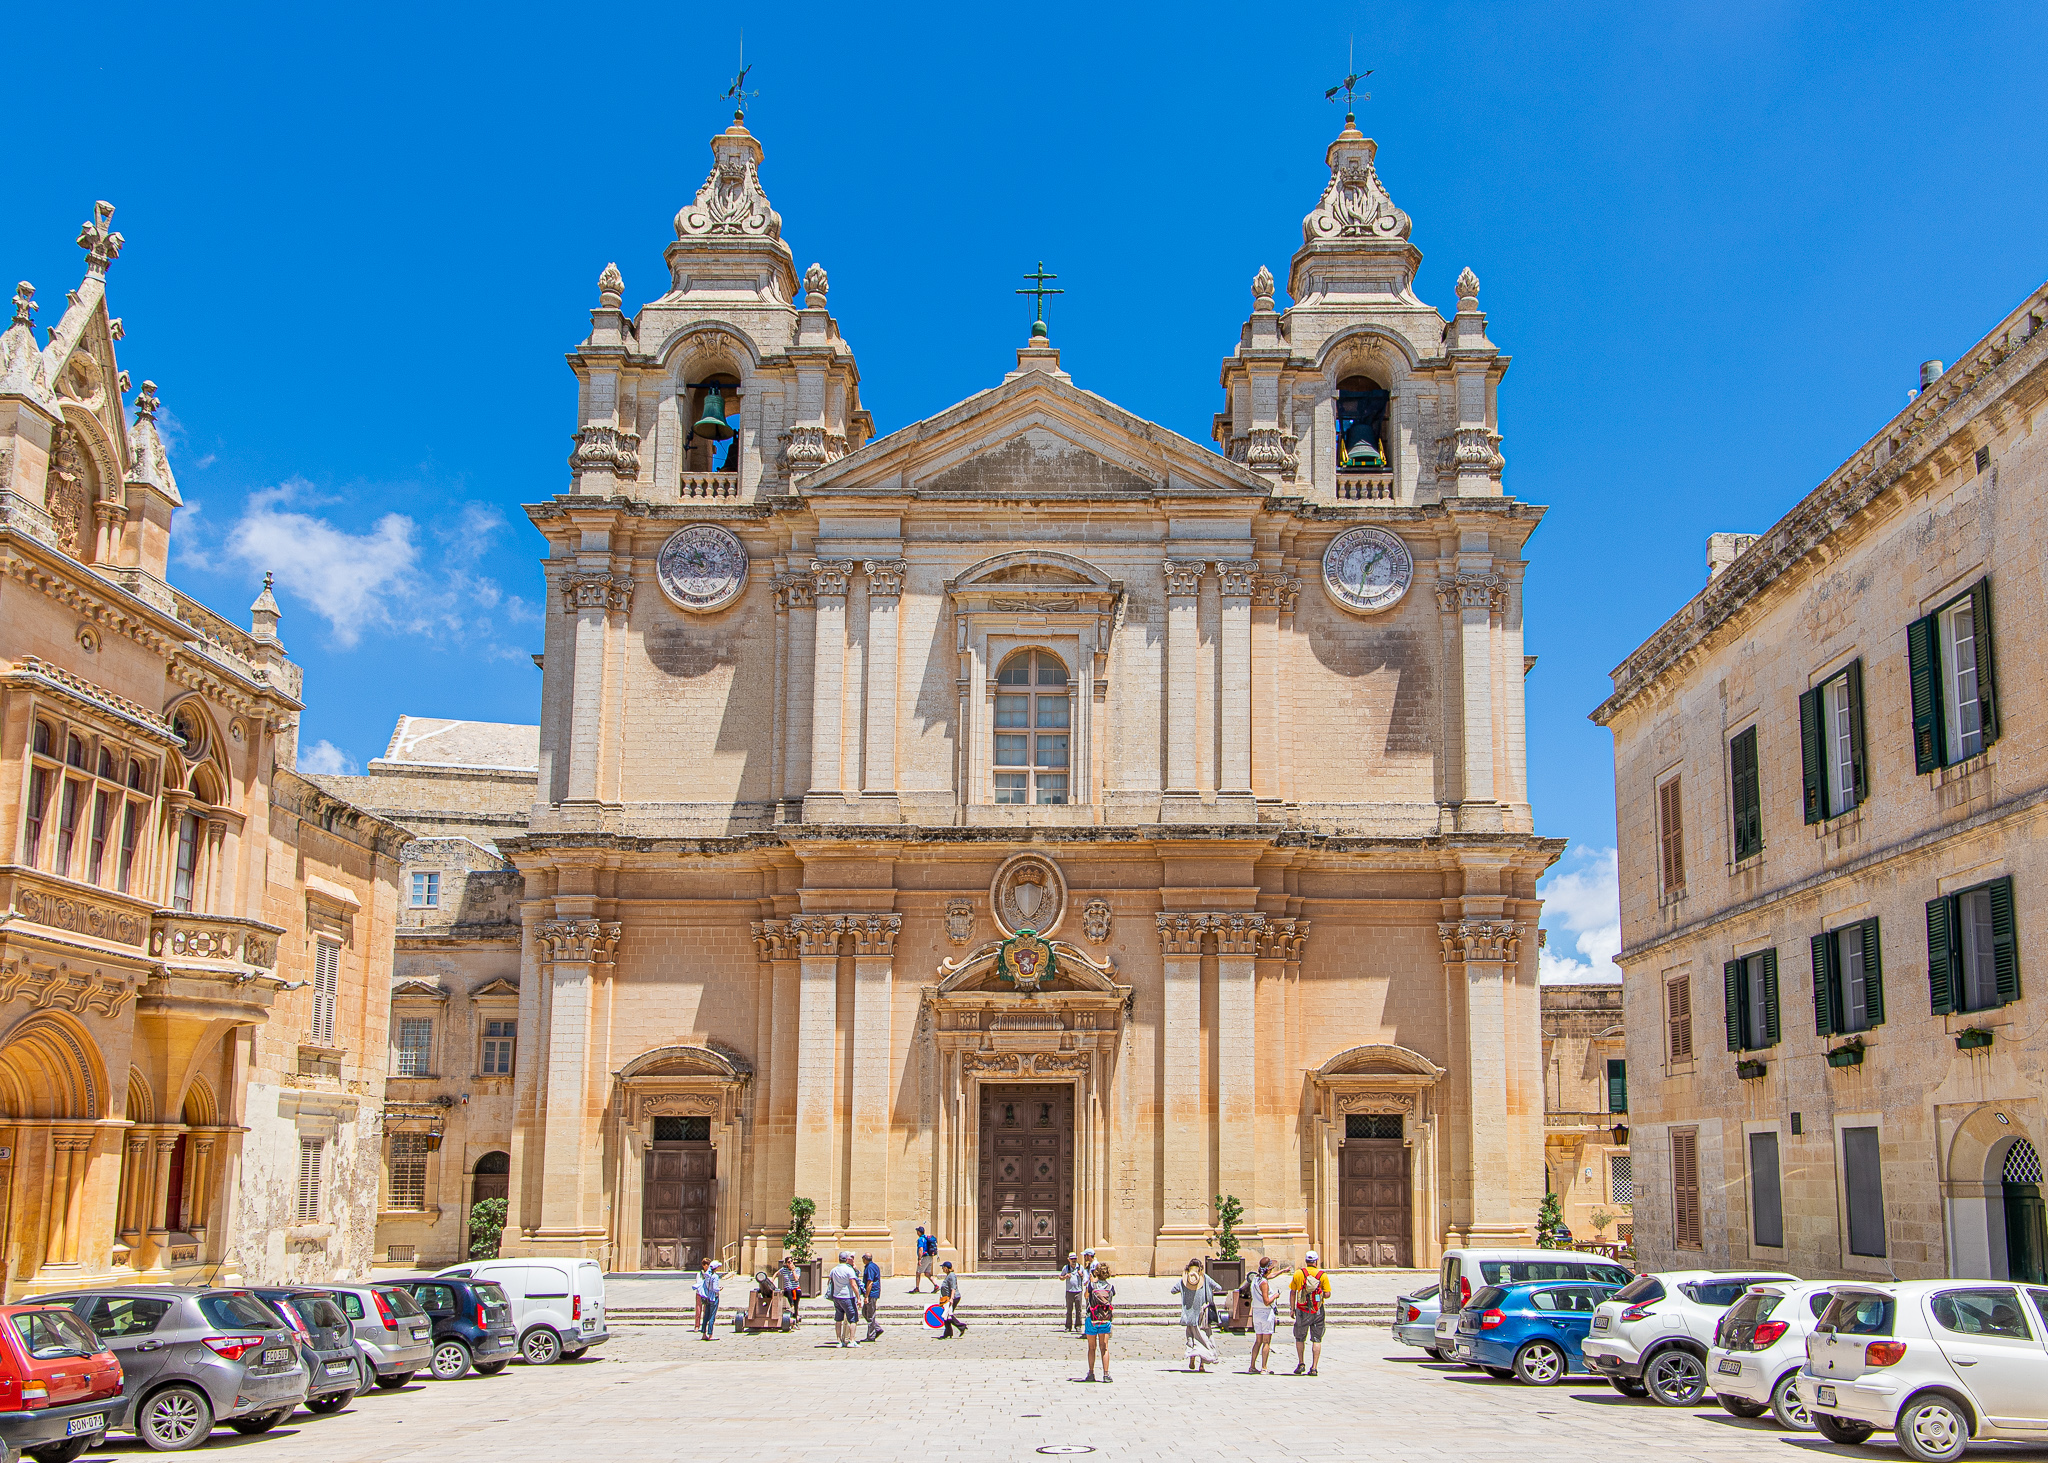 The Baroque-style Saint Paul's Cathedral